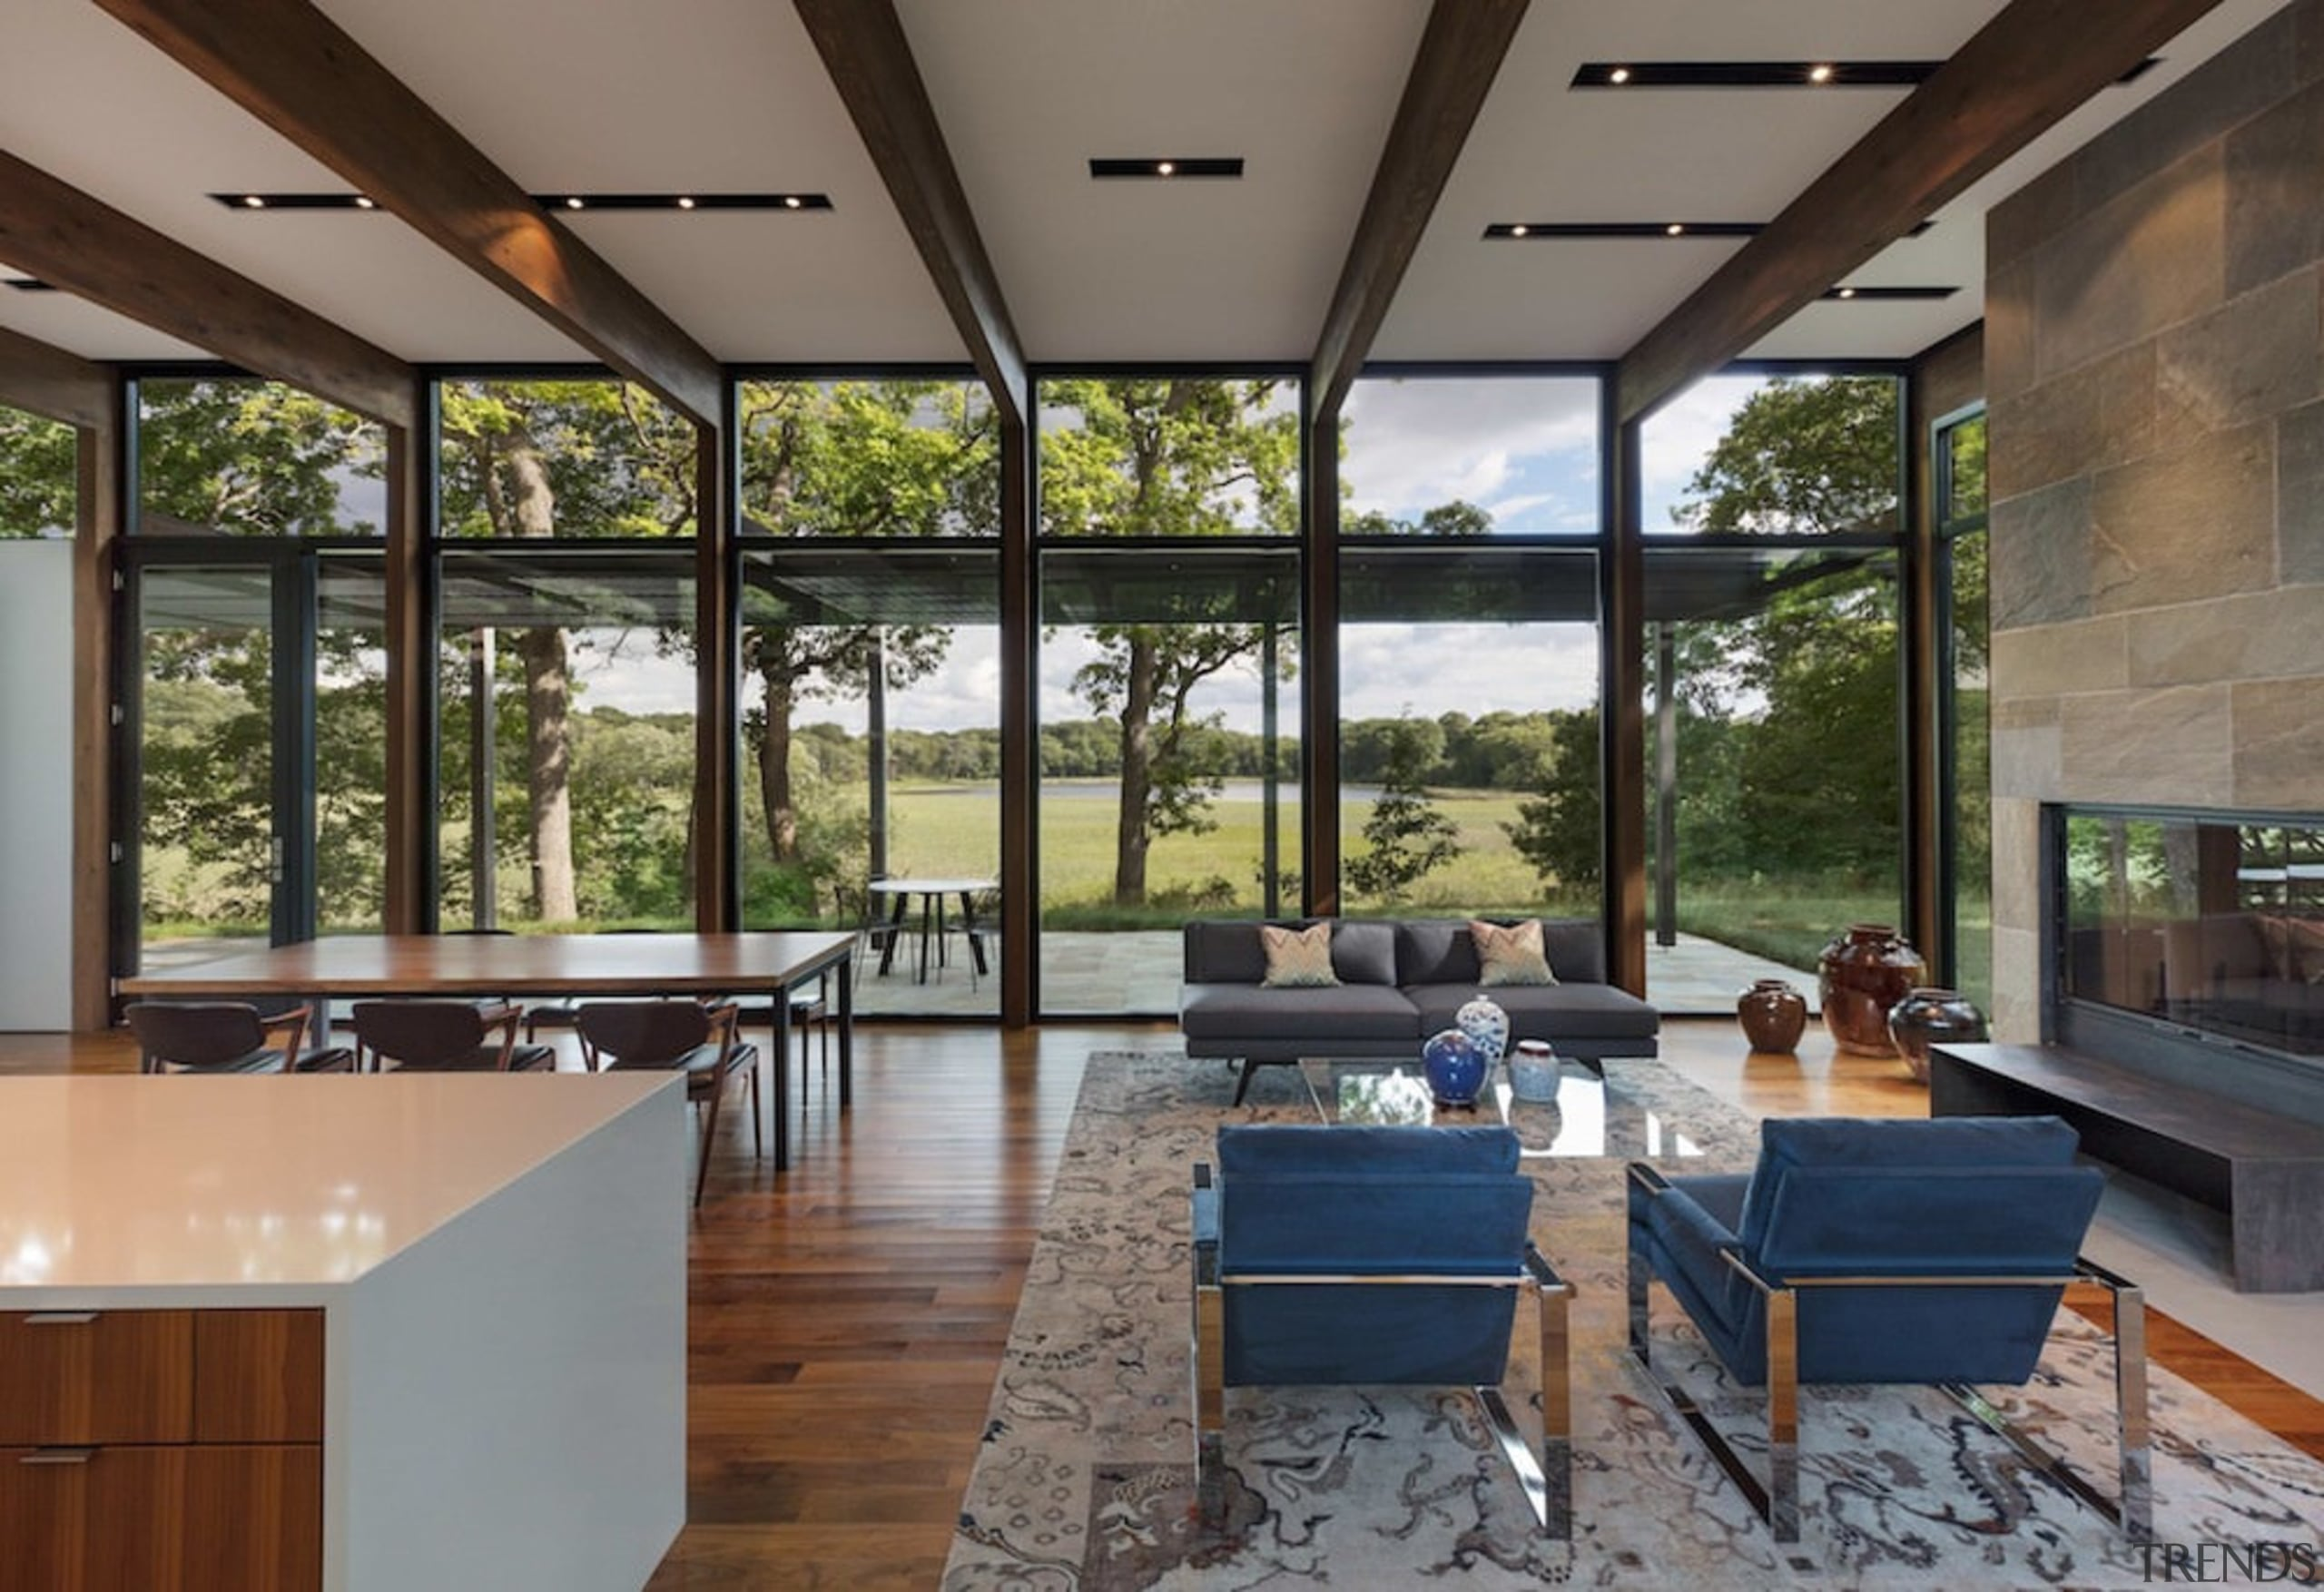 The view from this living area could be architecture, daylighting, house, interior design, real estate, window, gray, brown